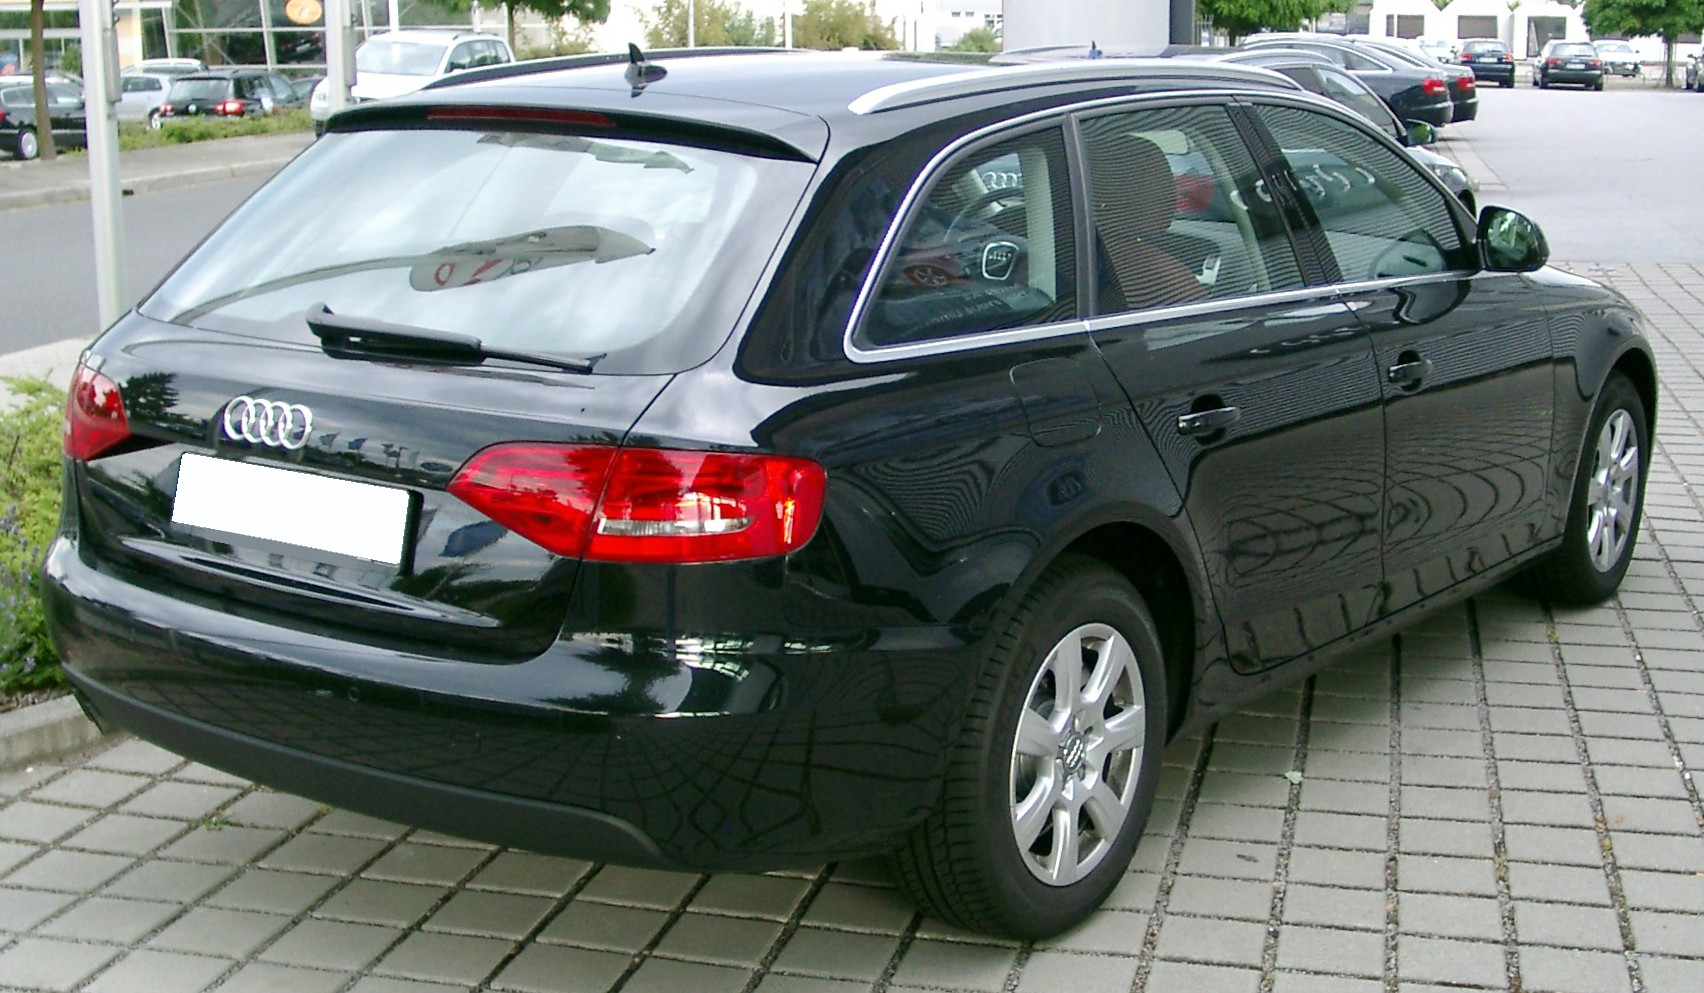 File Audi A4 B8 Avant Rear 20080620 Jpg Wikimedia Commons